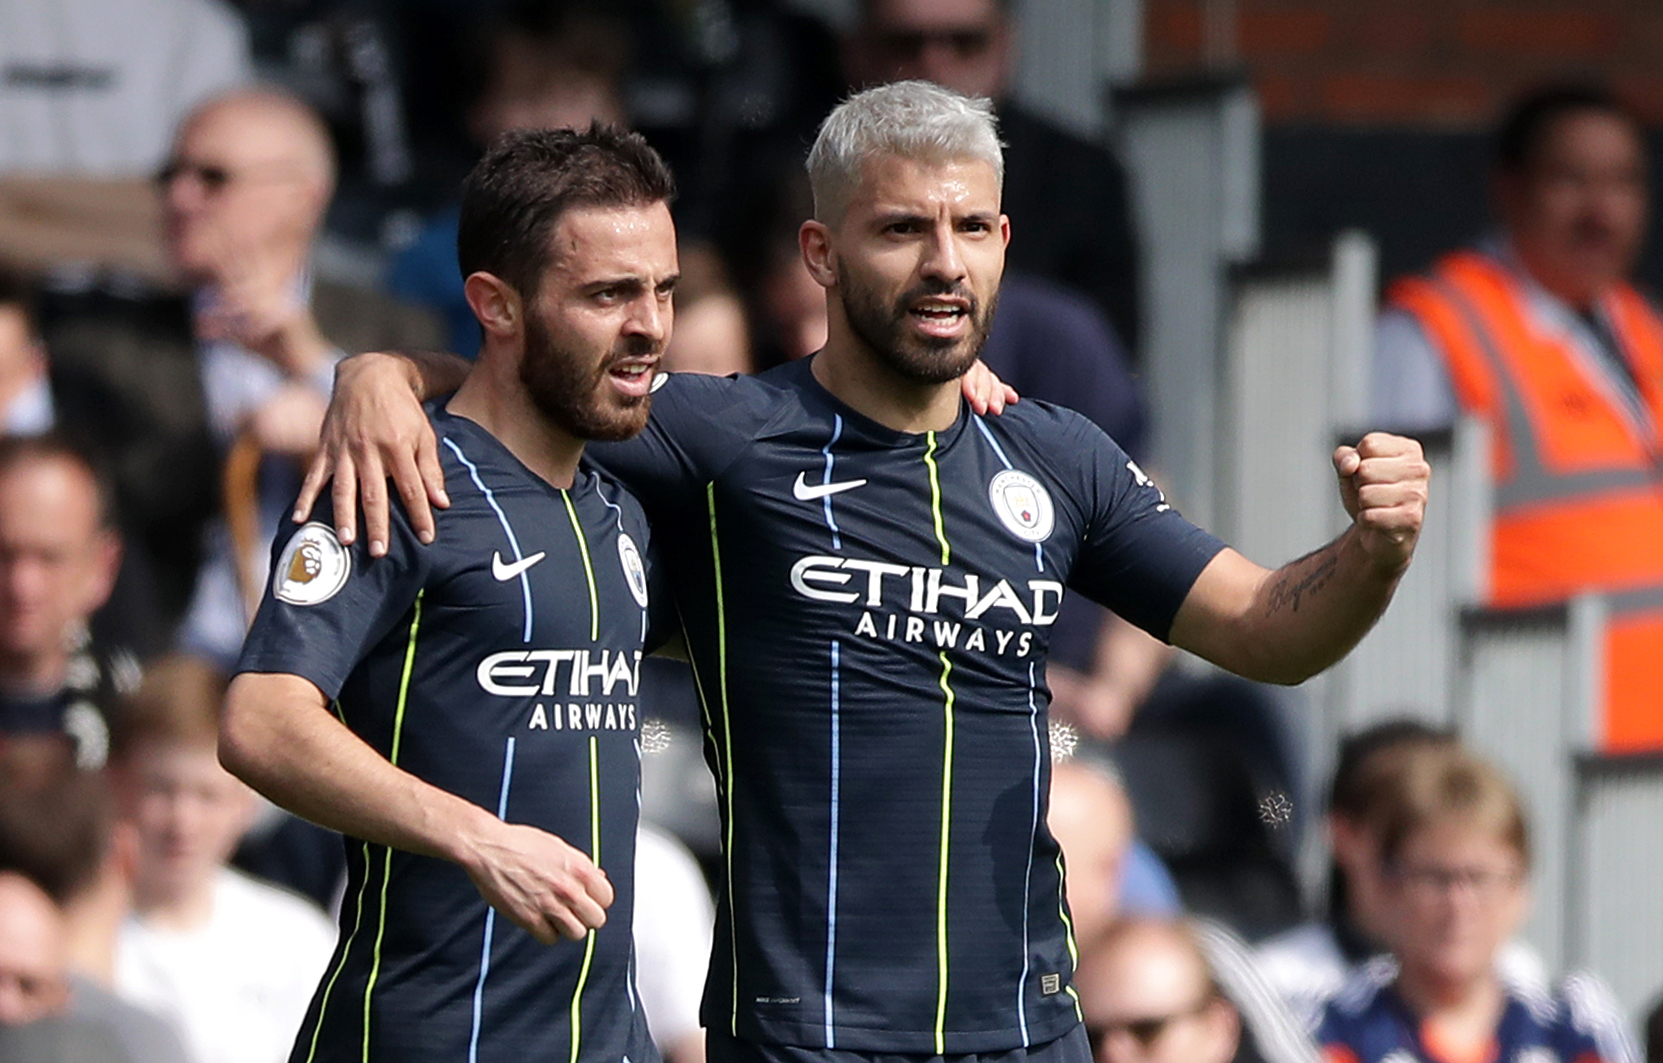 Bernardo Silva insists Man City squad are 'ready' to win titles